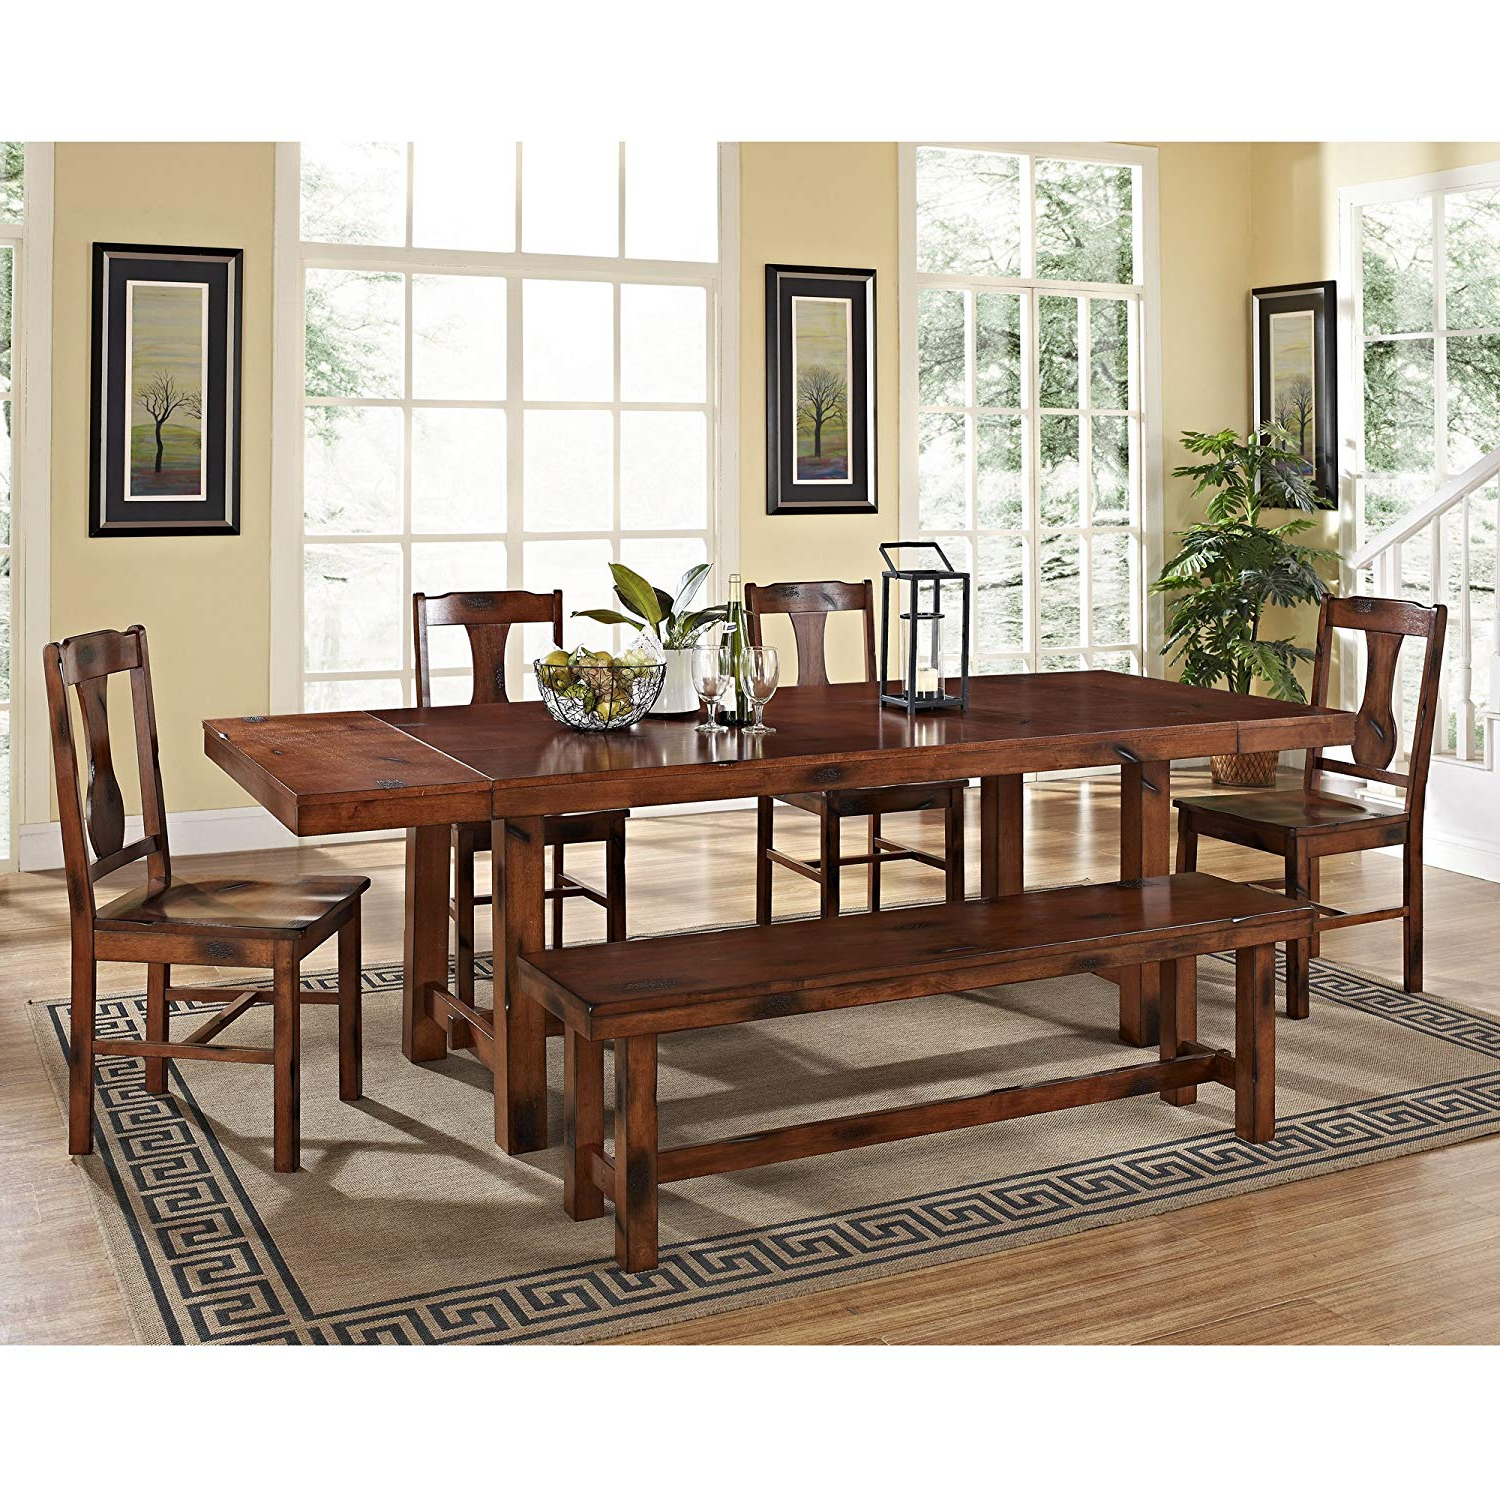 Well Known West Hill Family Table 3 Piece Dining Sets Within Amazon – 6 Piece Solid Wood Dining Set, Dark Oak – Table & Chair (View 18 of 25)